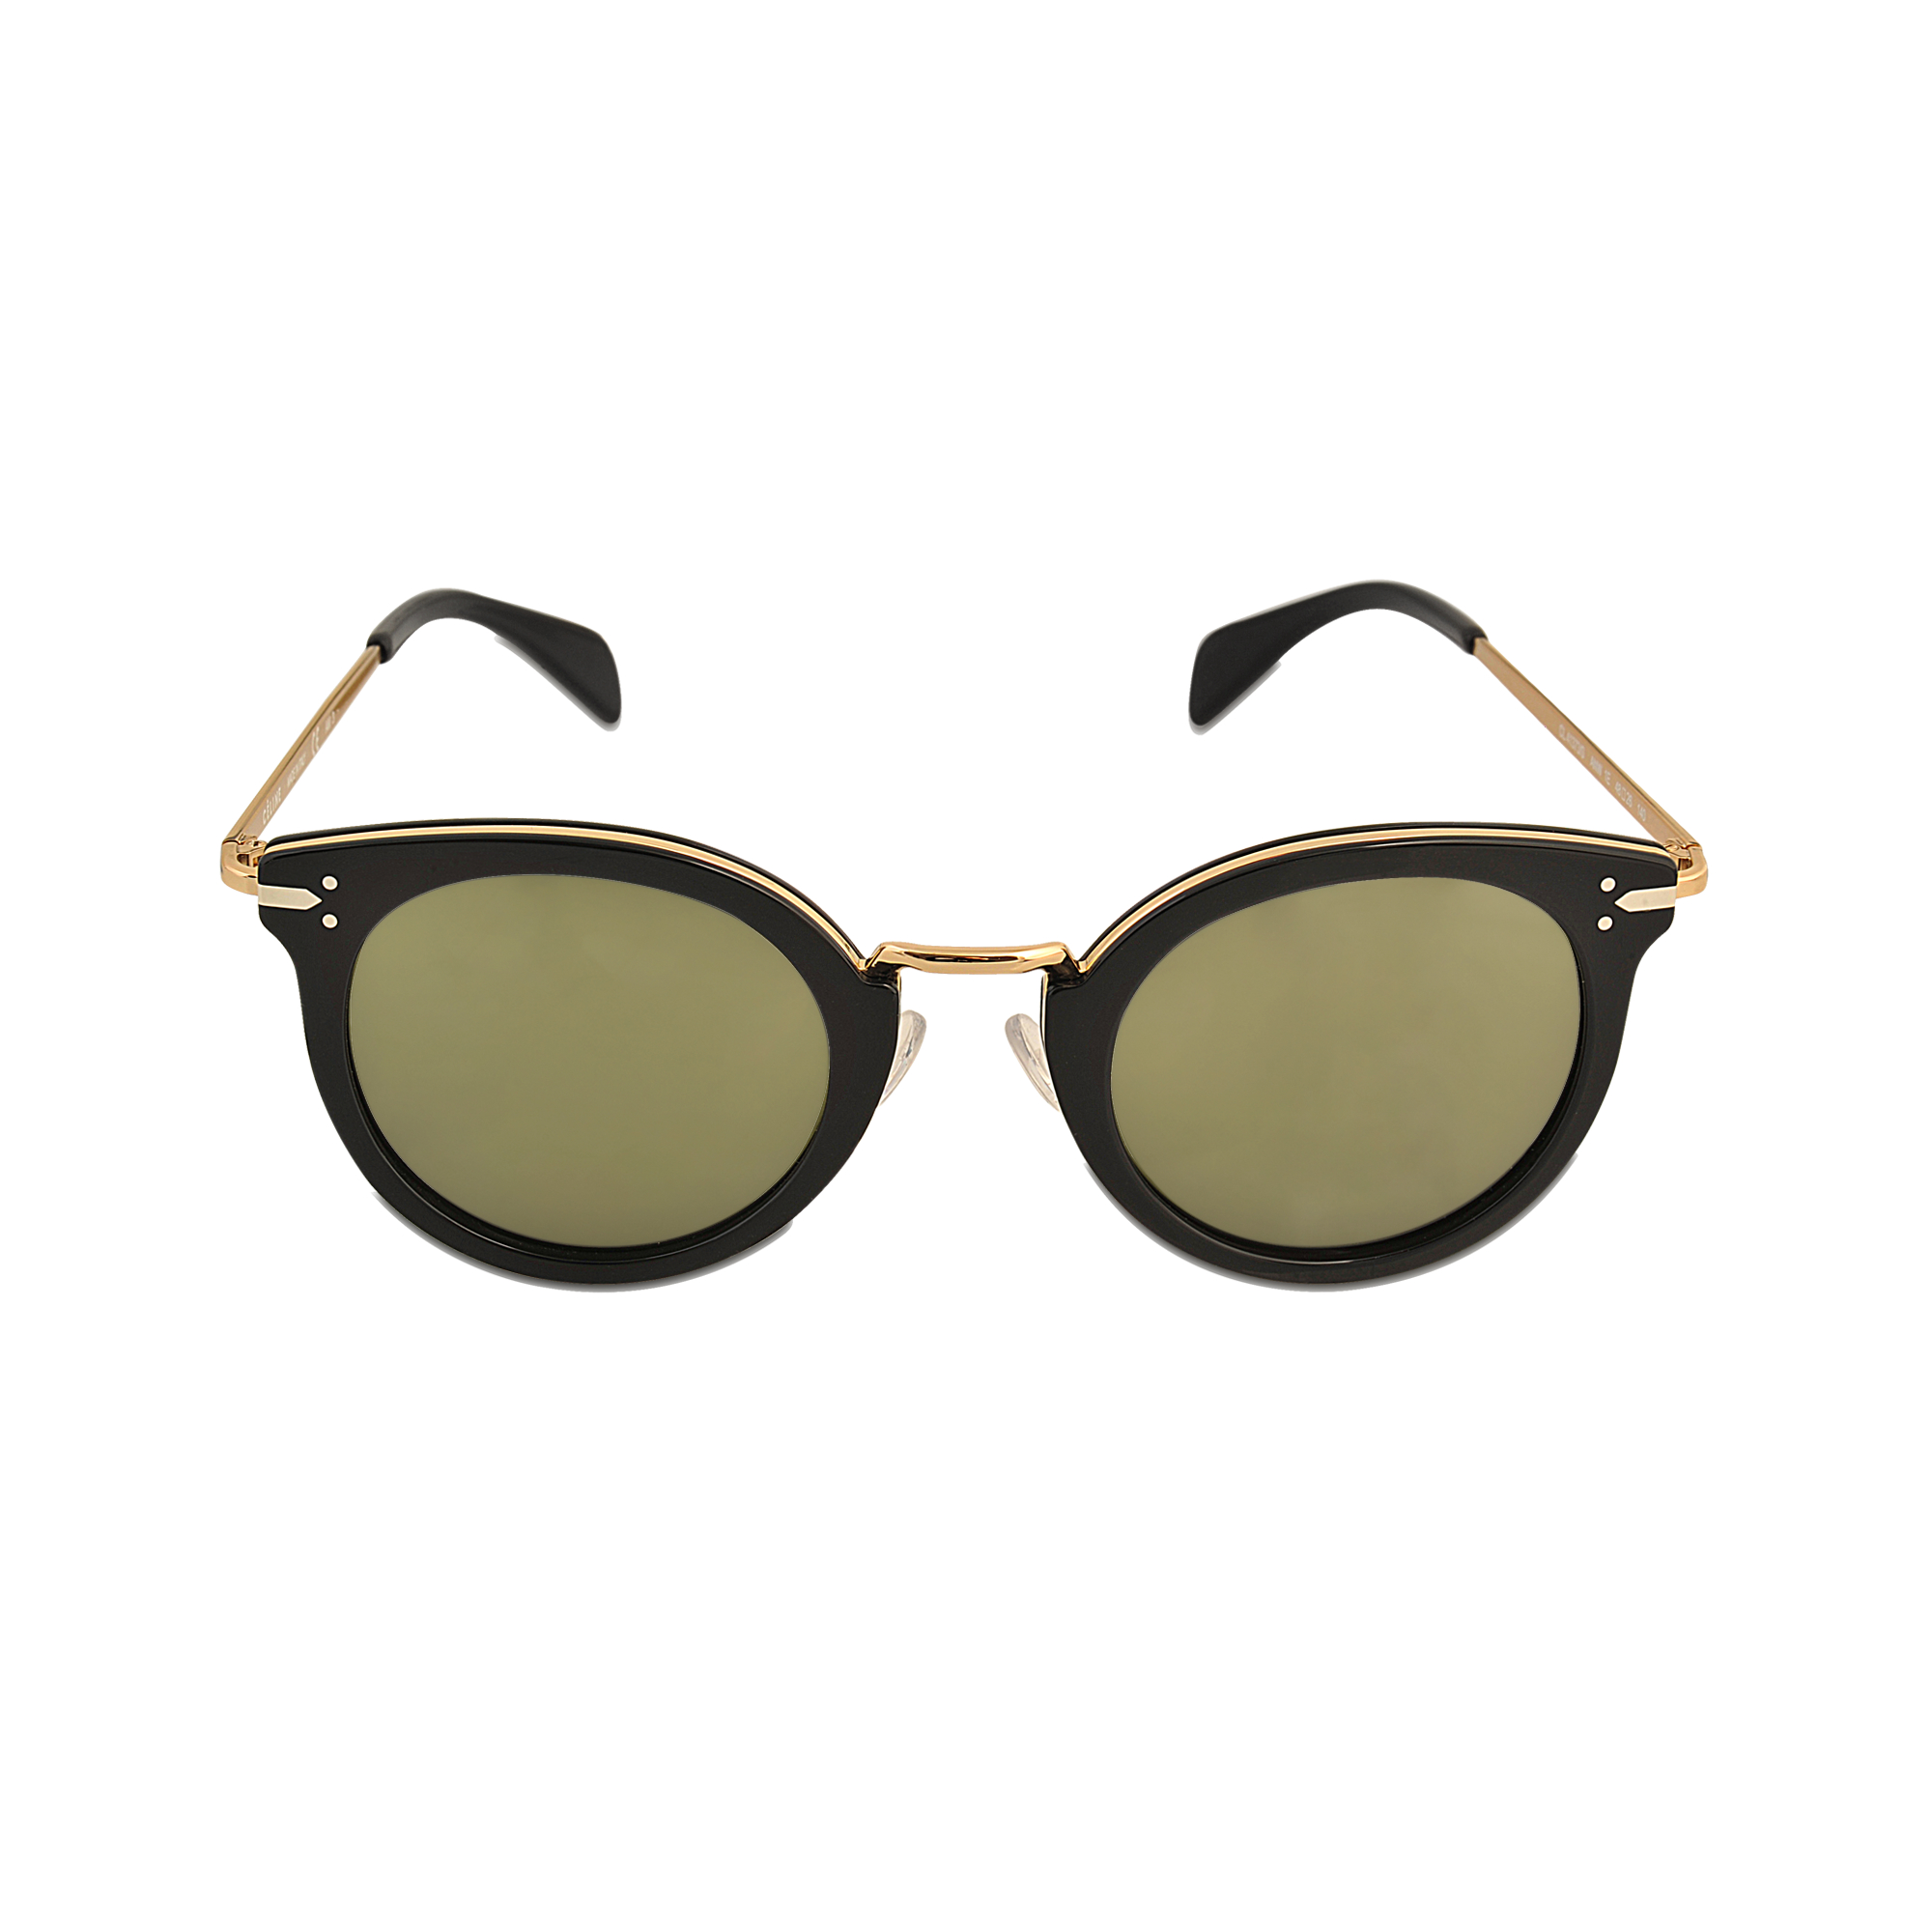 Celine Gold Frame Sunglasses : Celine Cl 41373/s Lea Sunglasses in Gold Lyst